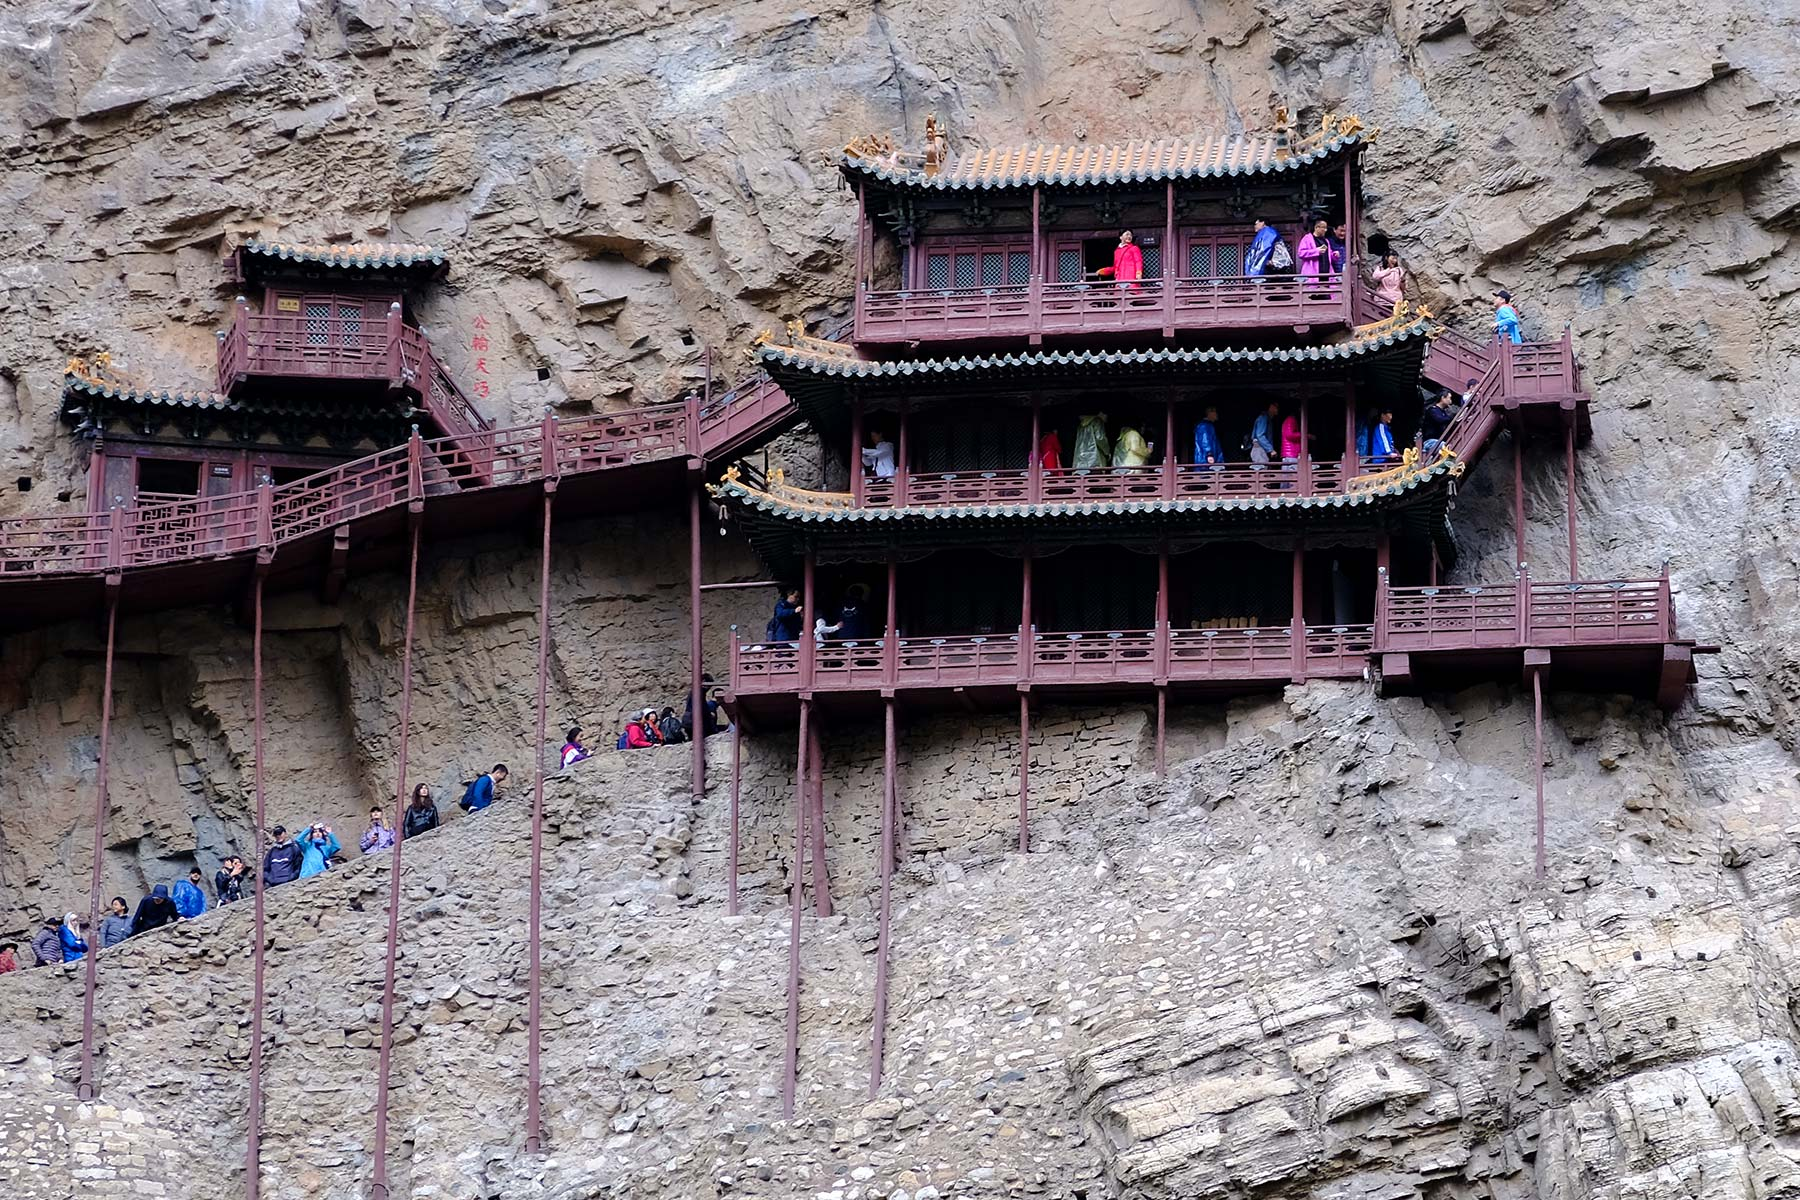 YHanging Temple, Xuankong Temple in Datong, China